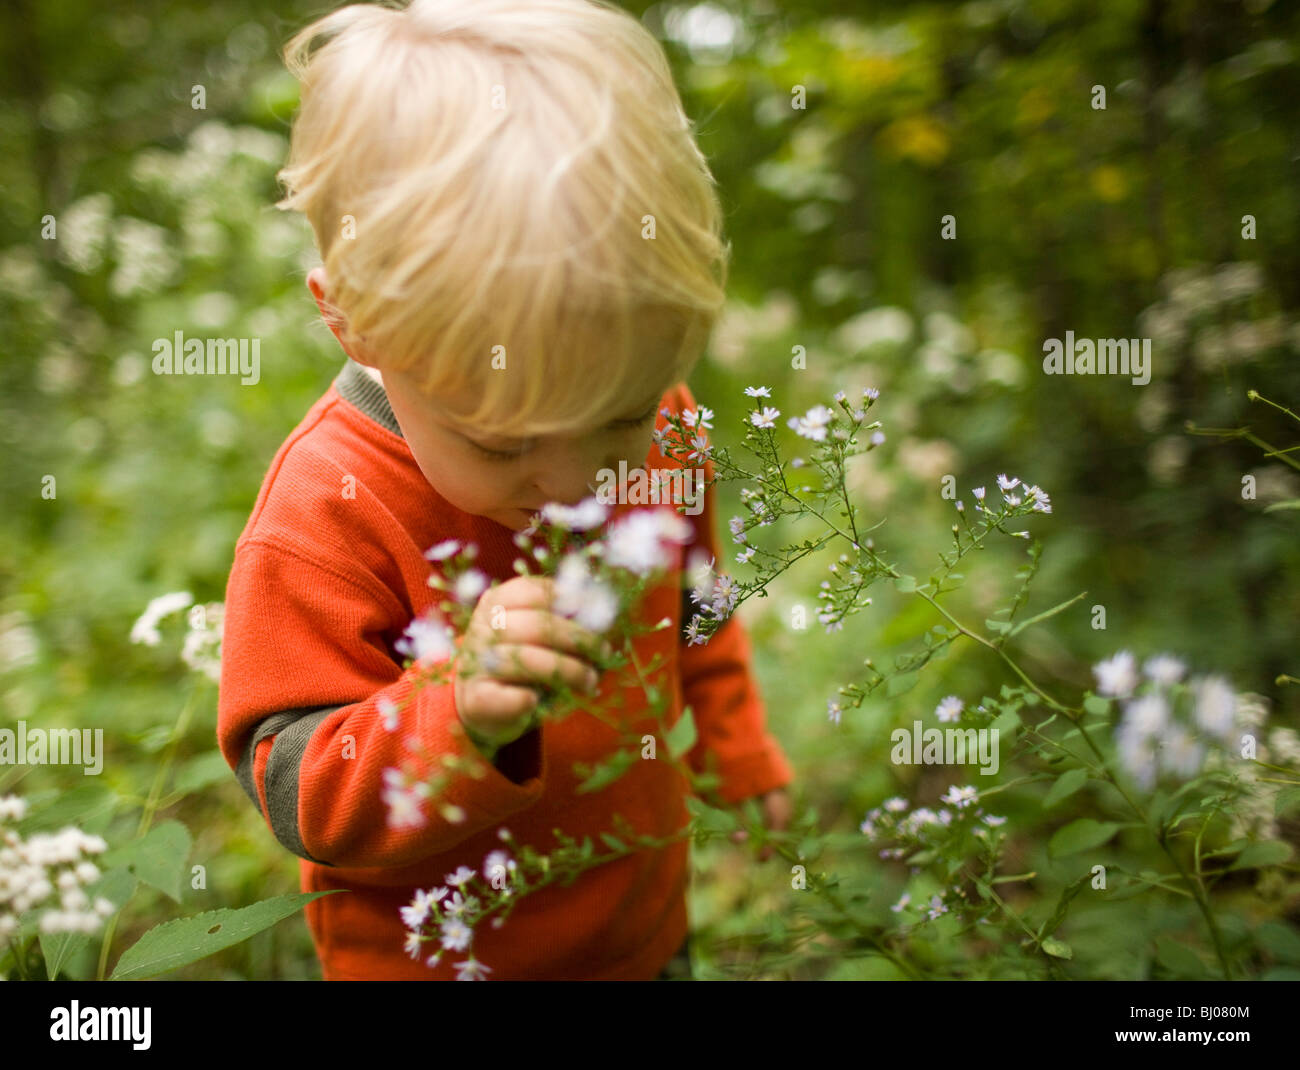 Young boy smelling wildflowers in the woods. Stock Photo